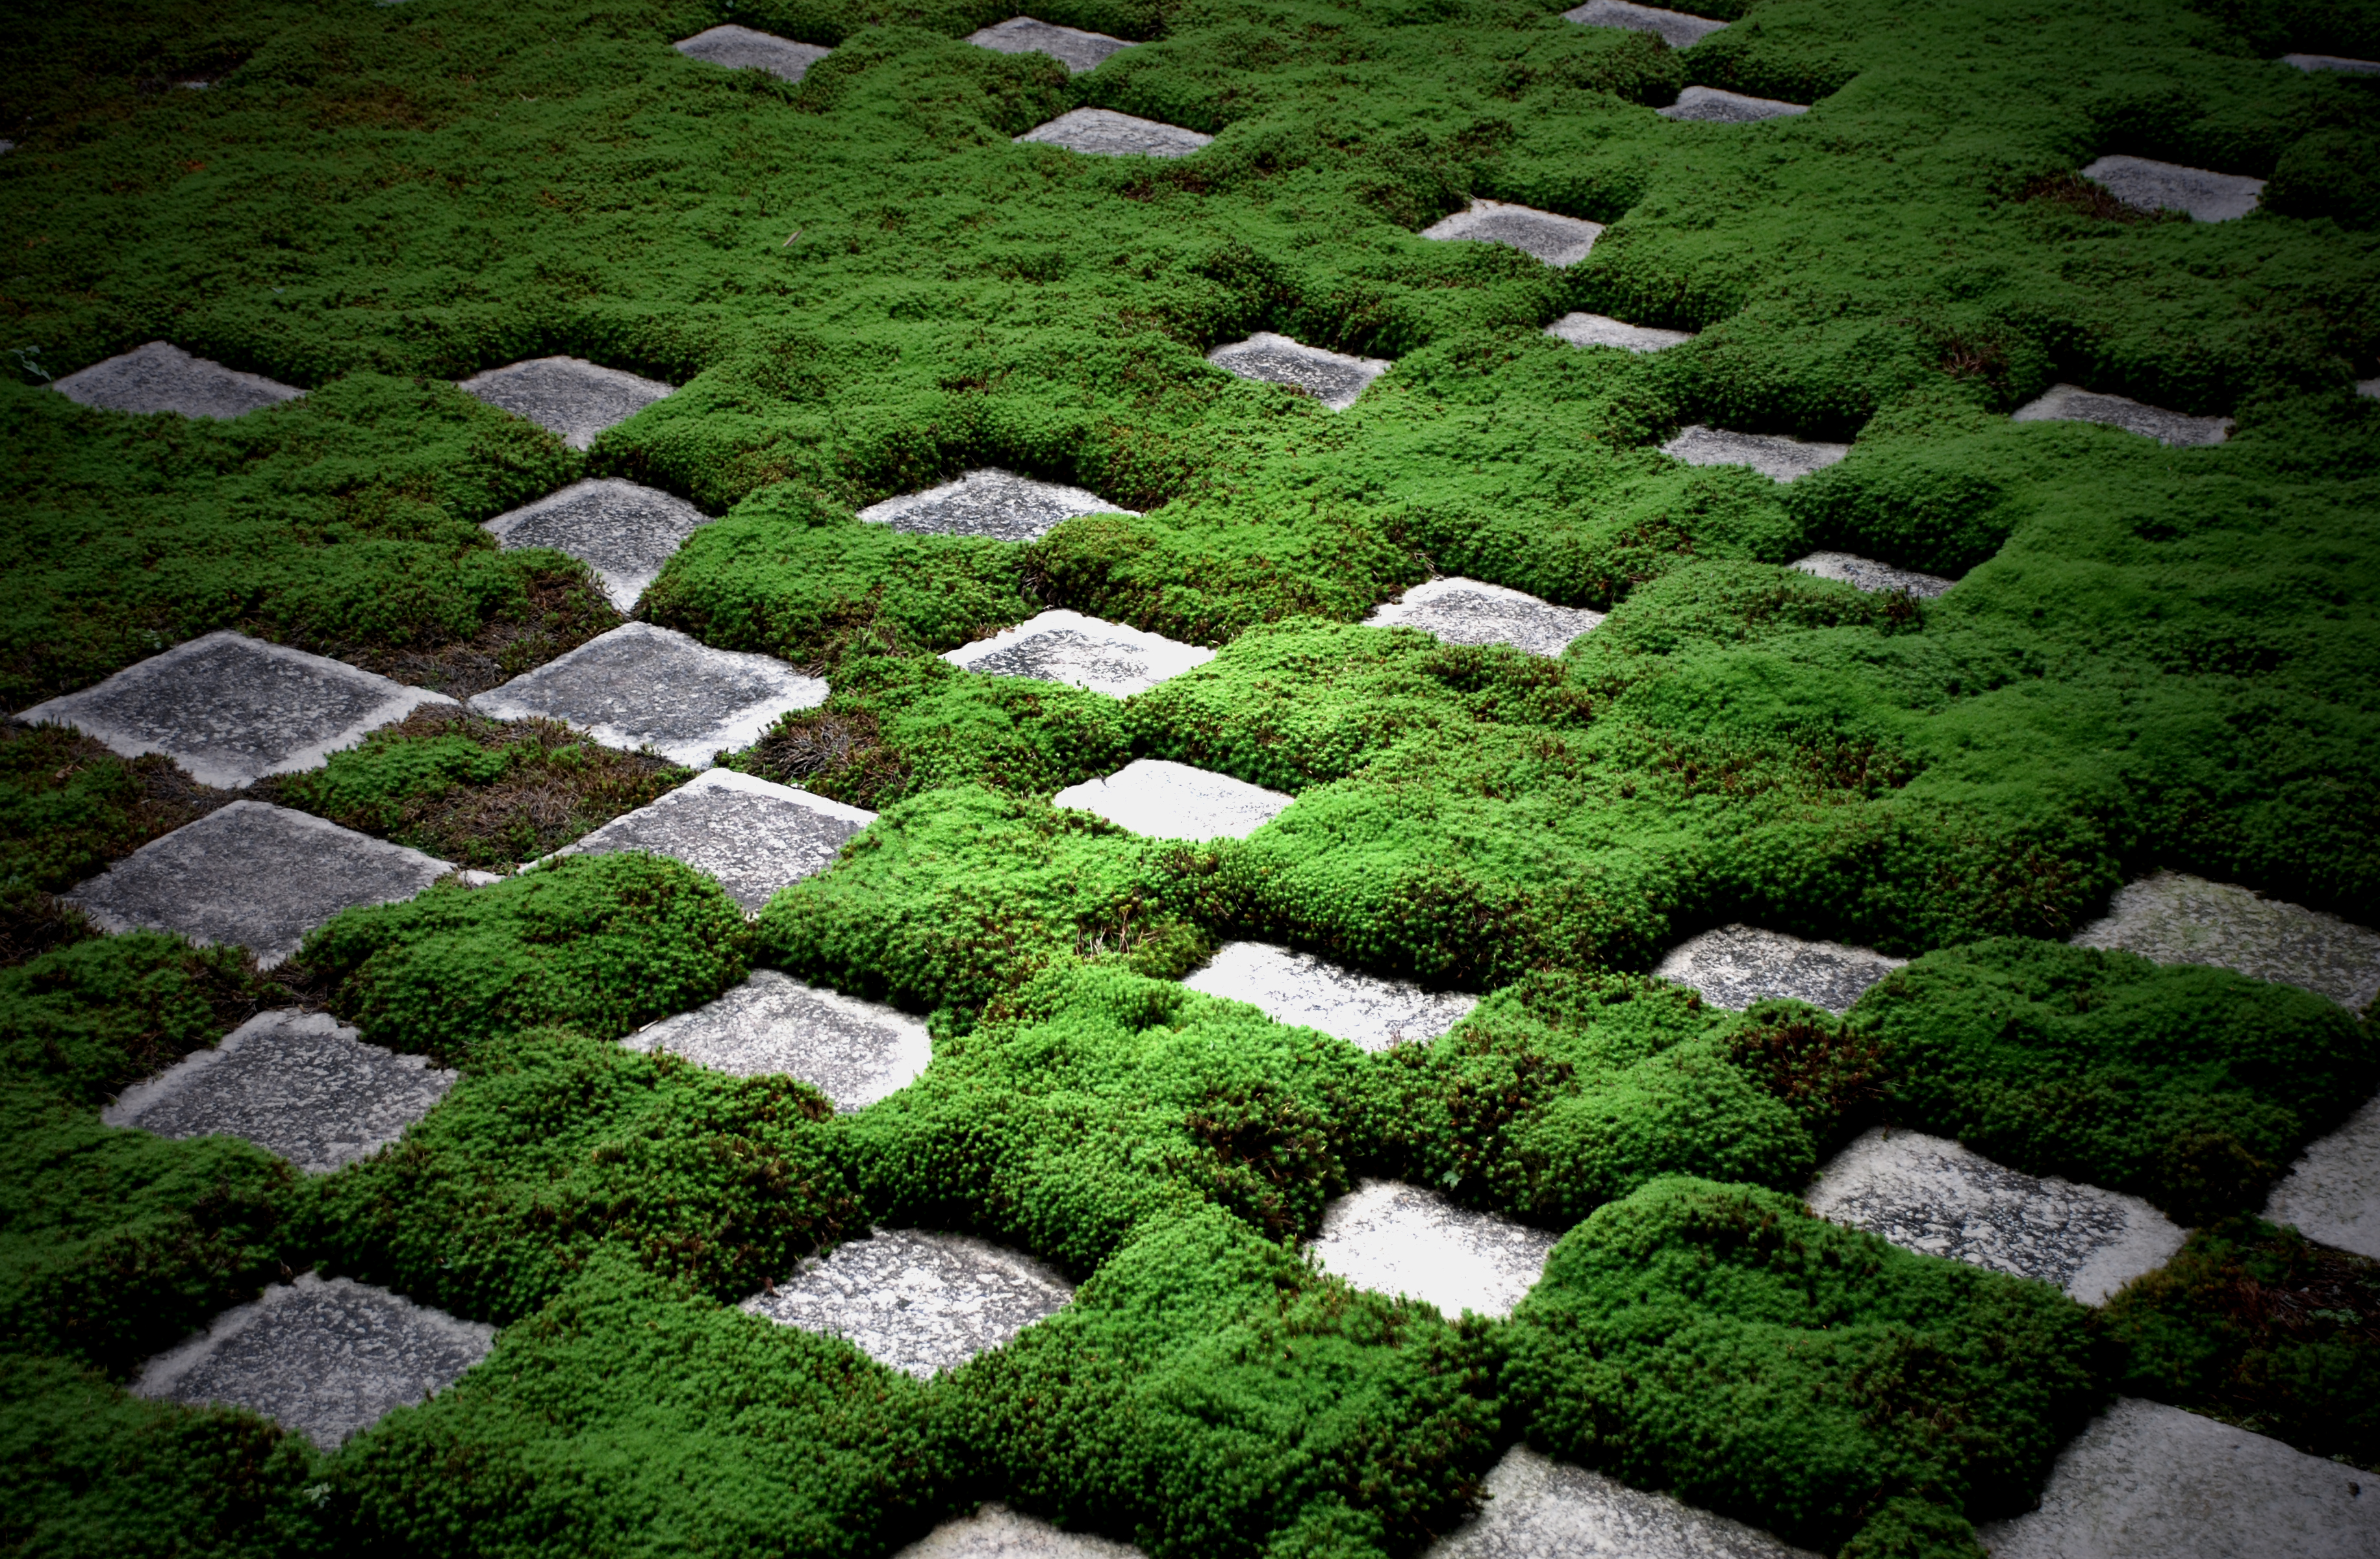 How To Get Rid Of Moss On Pavers Home Guides Sf Gate